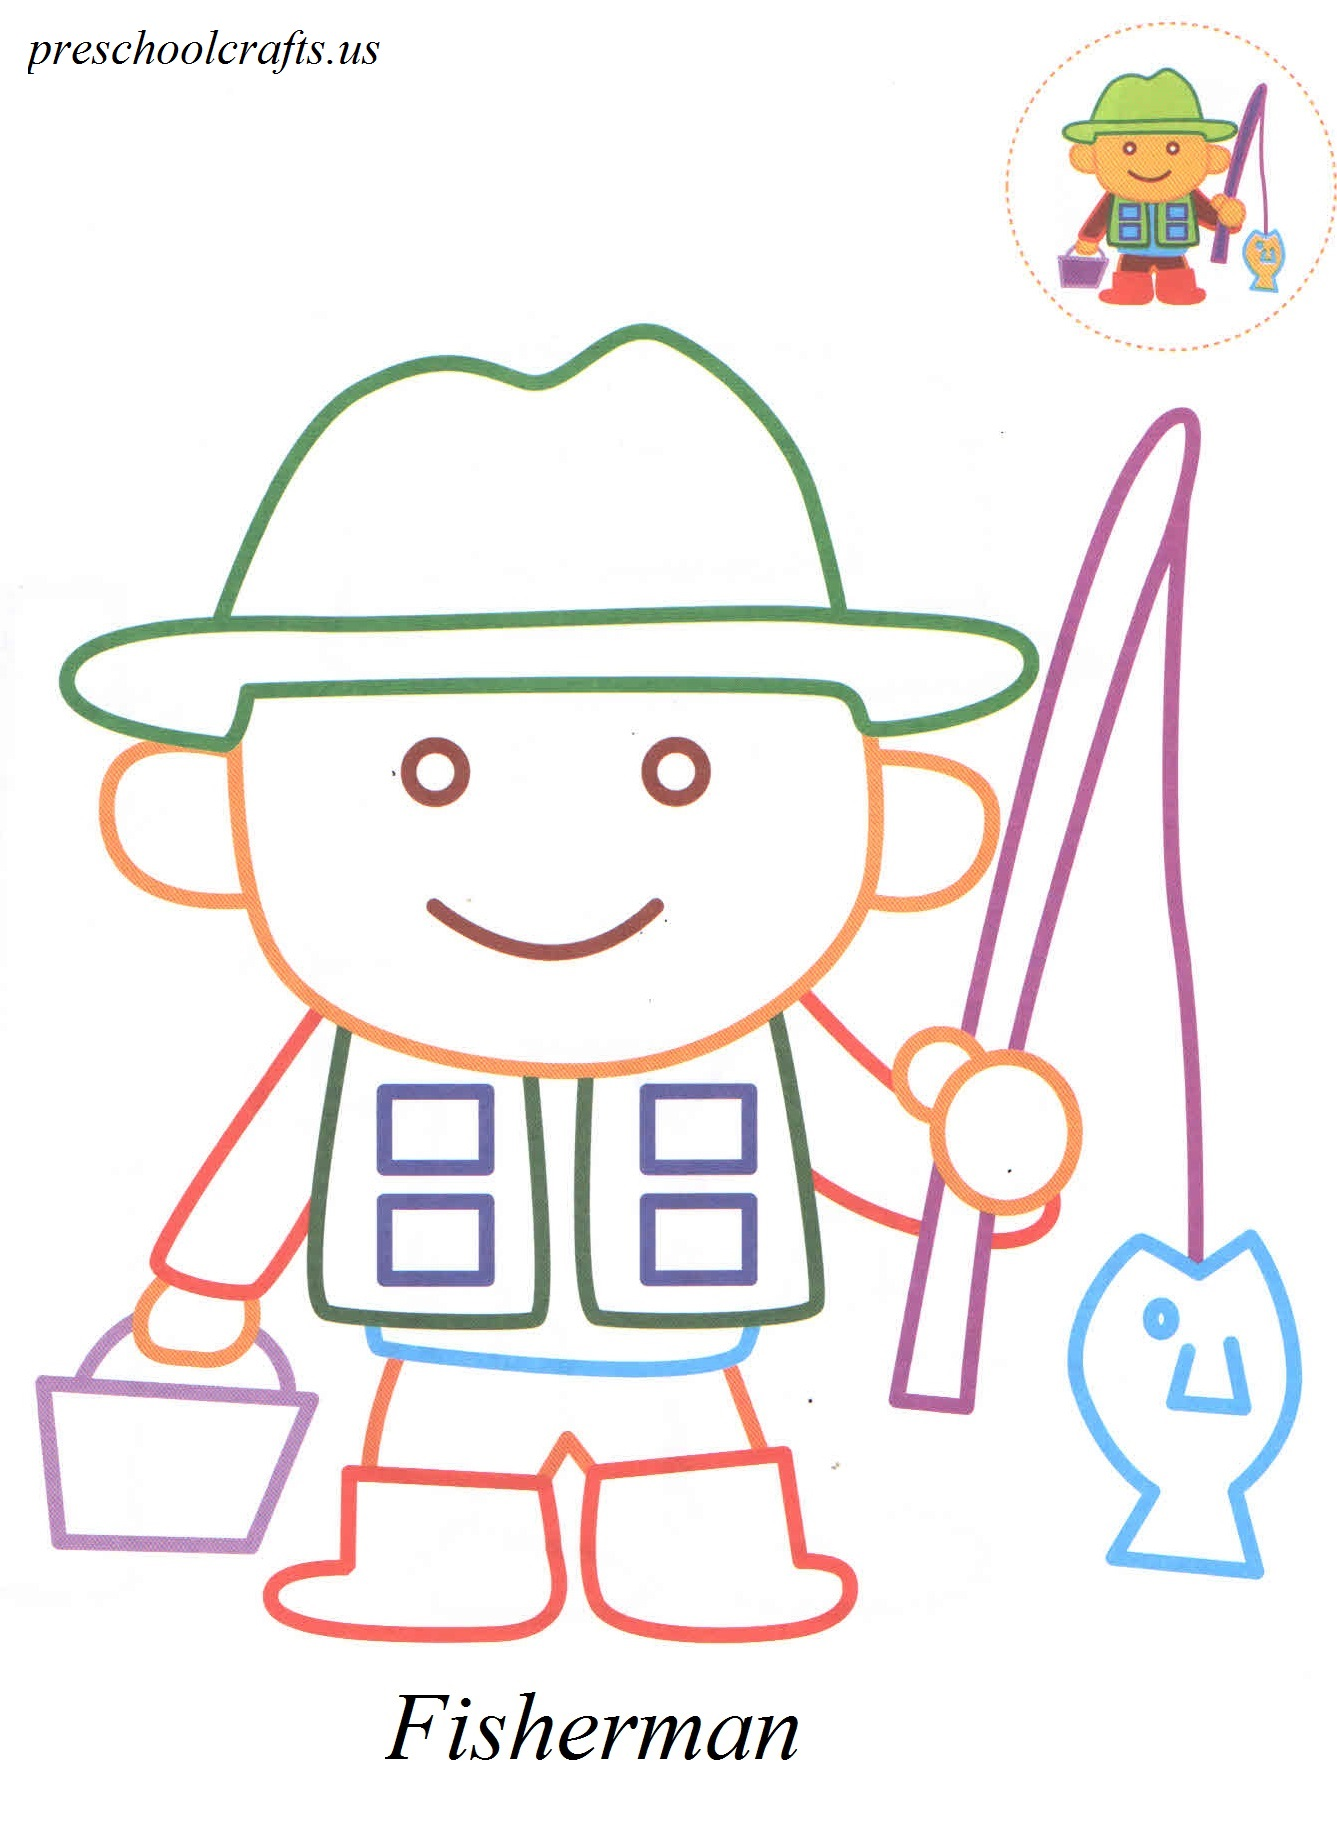 fisherman coloring pages Preschool Crafts